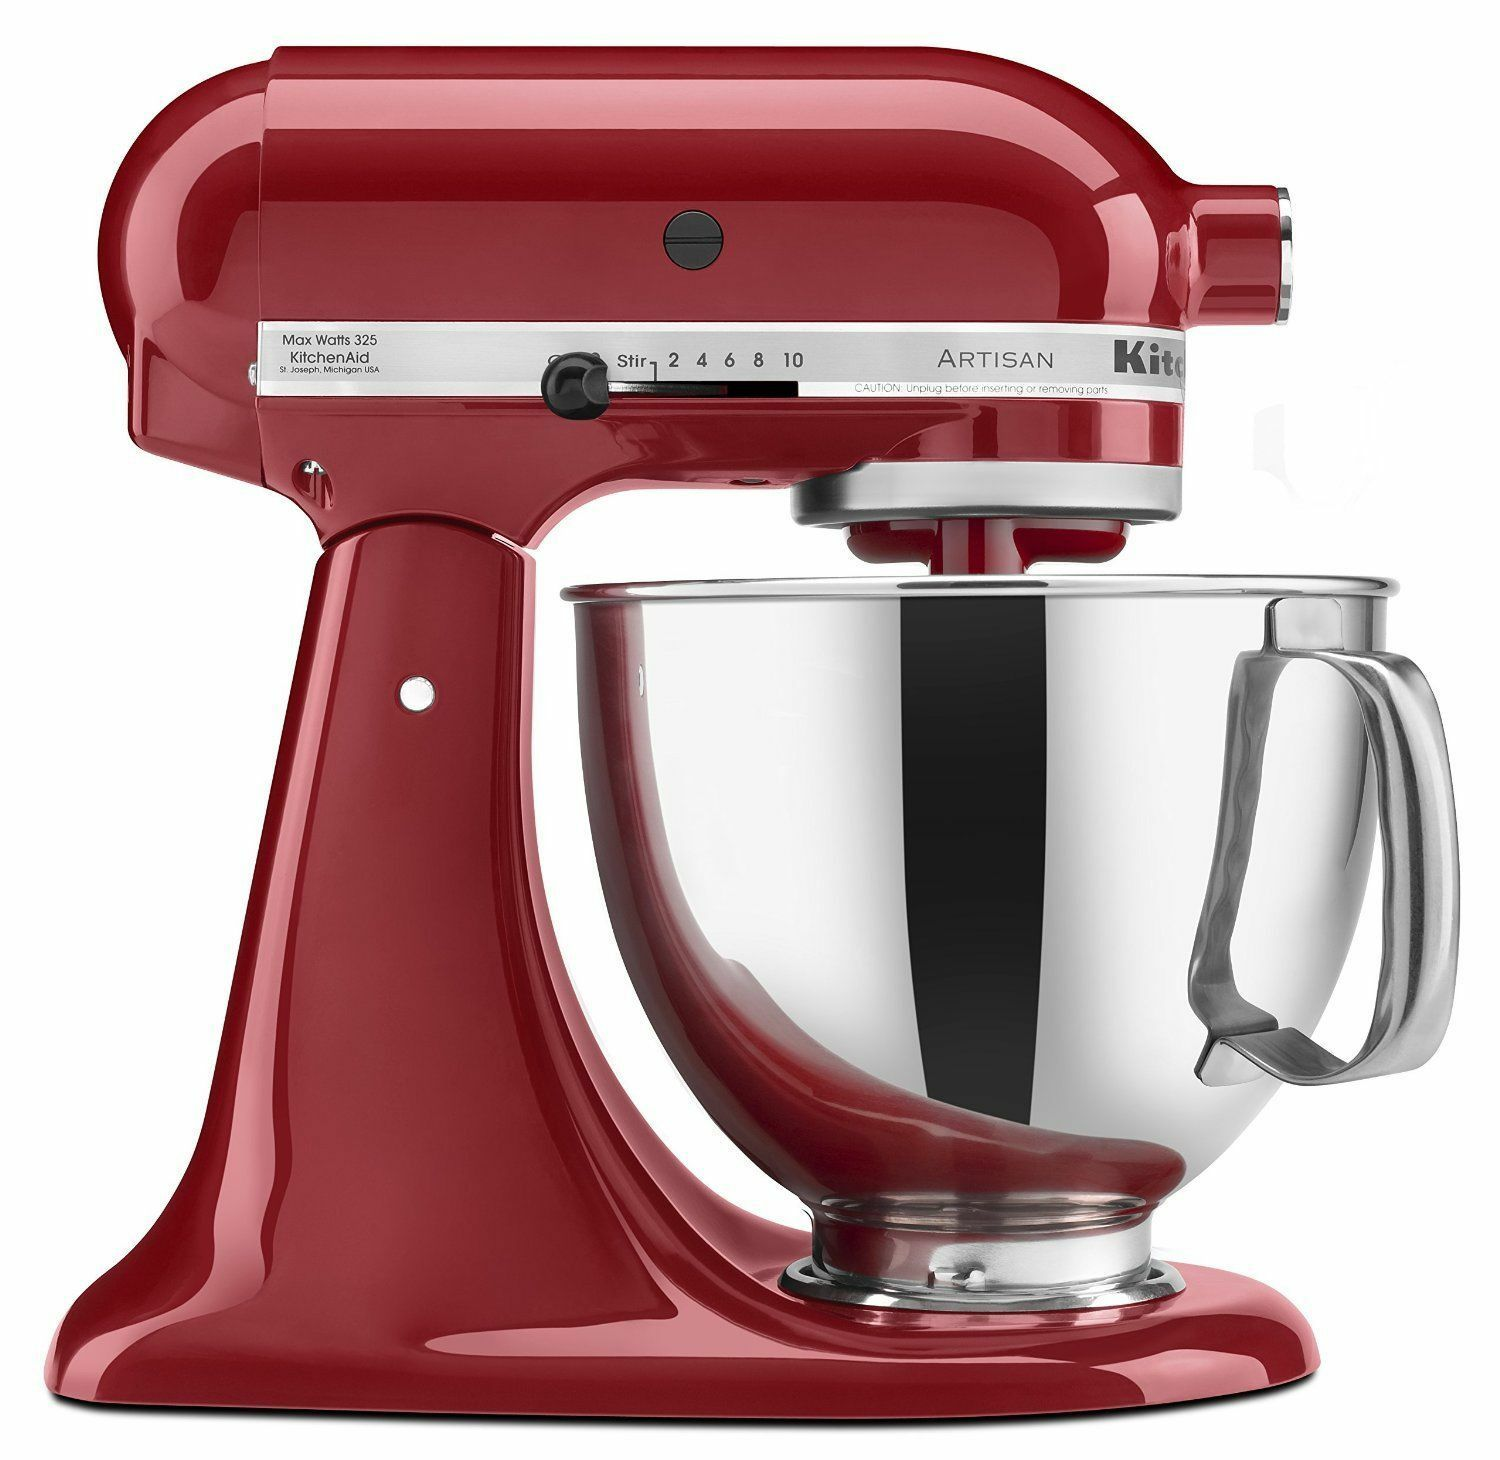 Kitchen small appliances usa - Design Gurus And Bakers Alike Prefer Kitchenaid S Stand Mixers Which Offer A Sleek Design And Family Of Easy To Use Adapters In A Rainbow Of High Gloss